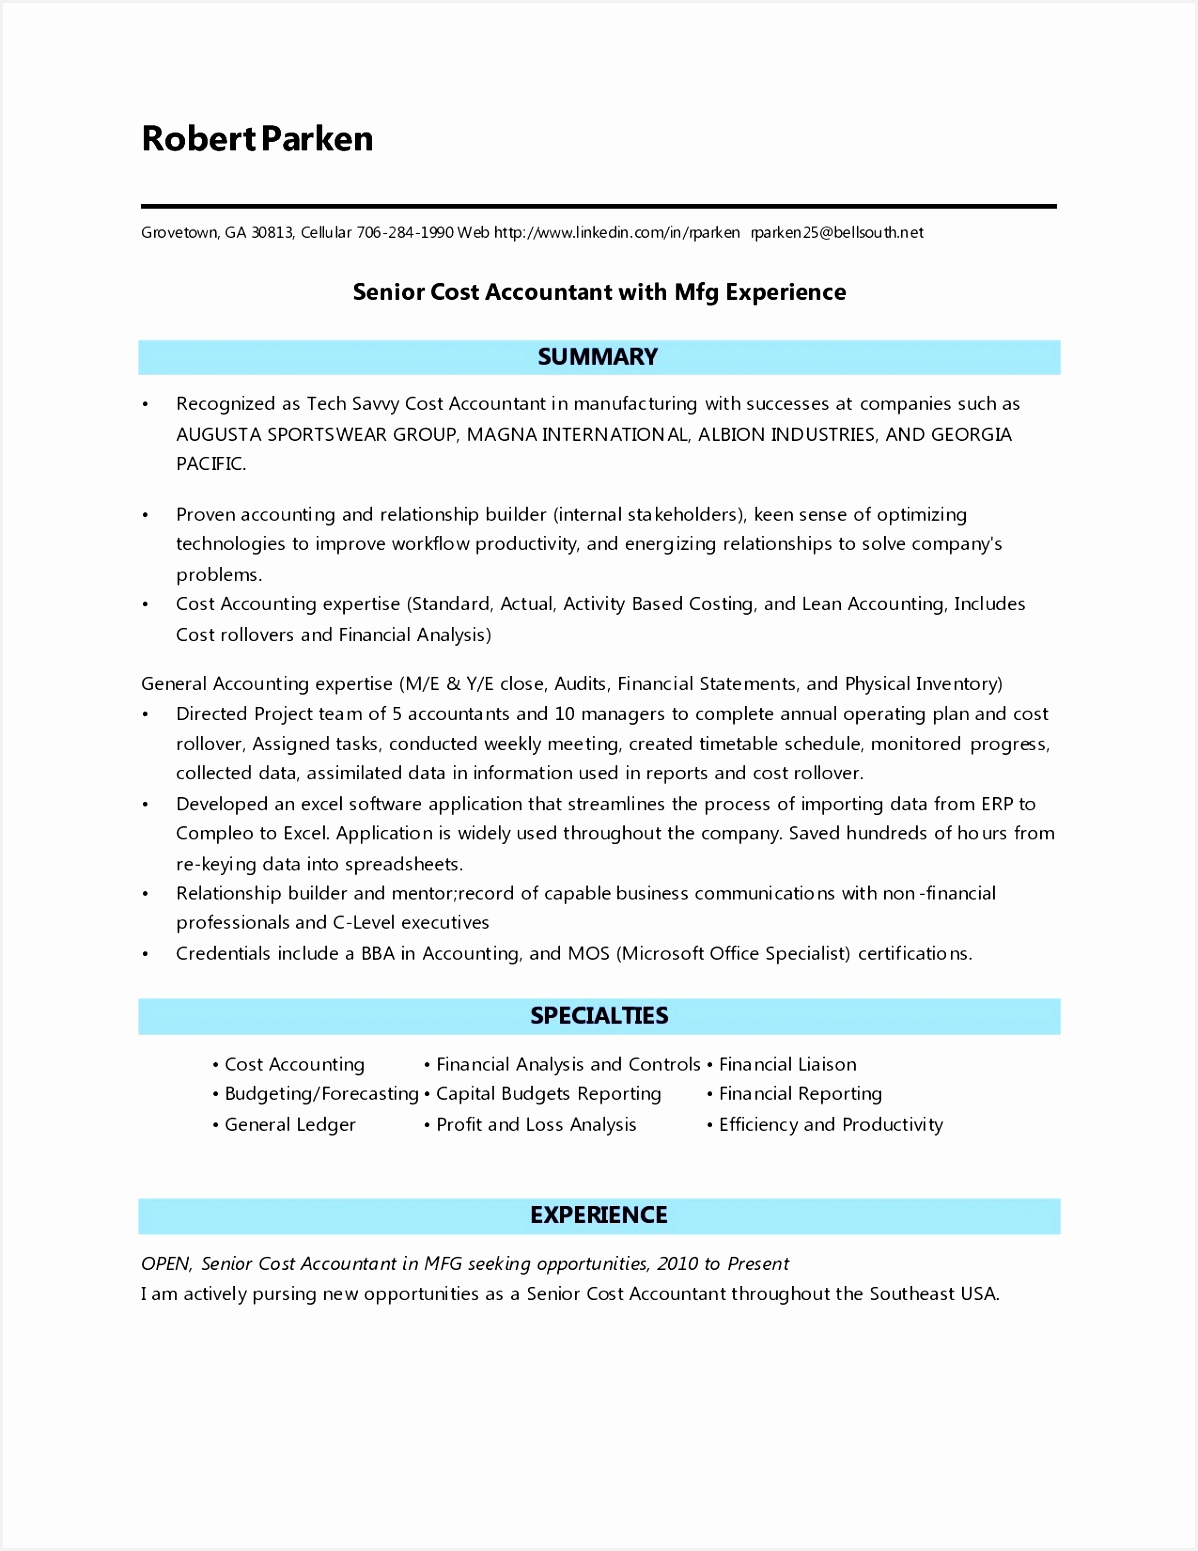 Elegant Cost Accountant Resume Sample Baskanai Cv Resume Template Unique Pr Resume Template Elegant Dictionary15511198